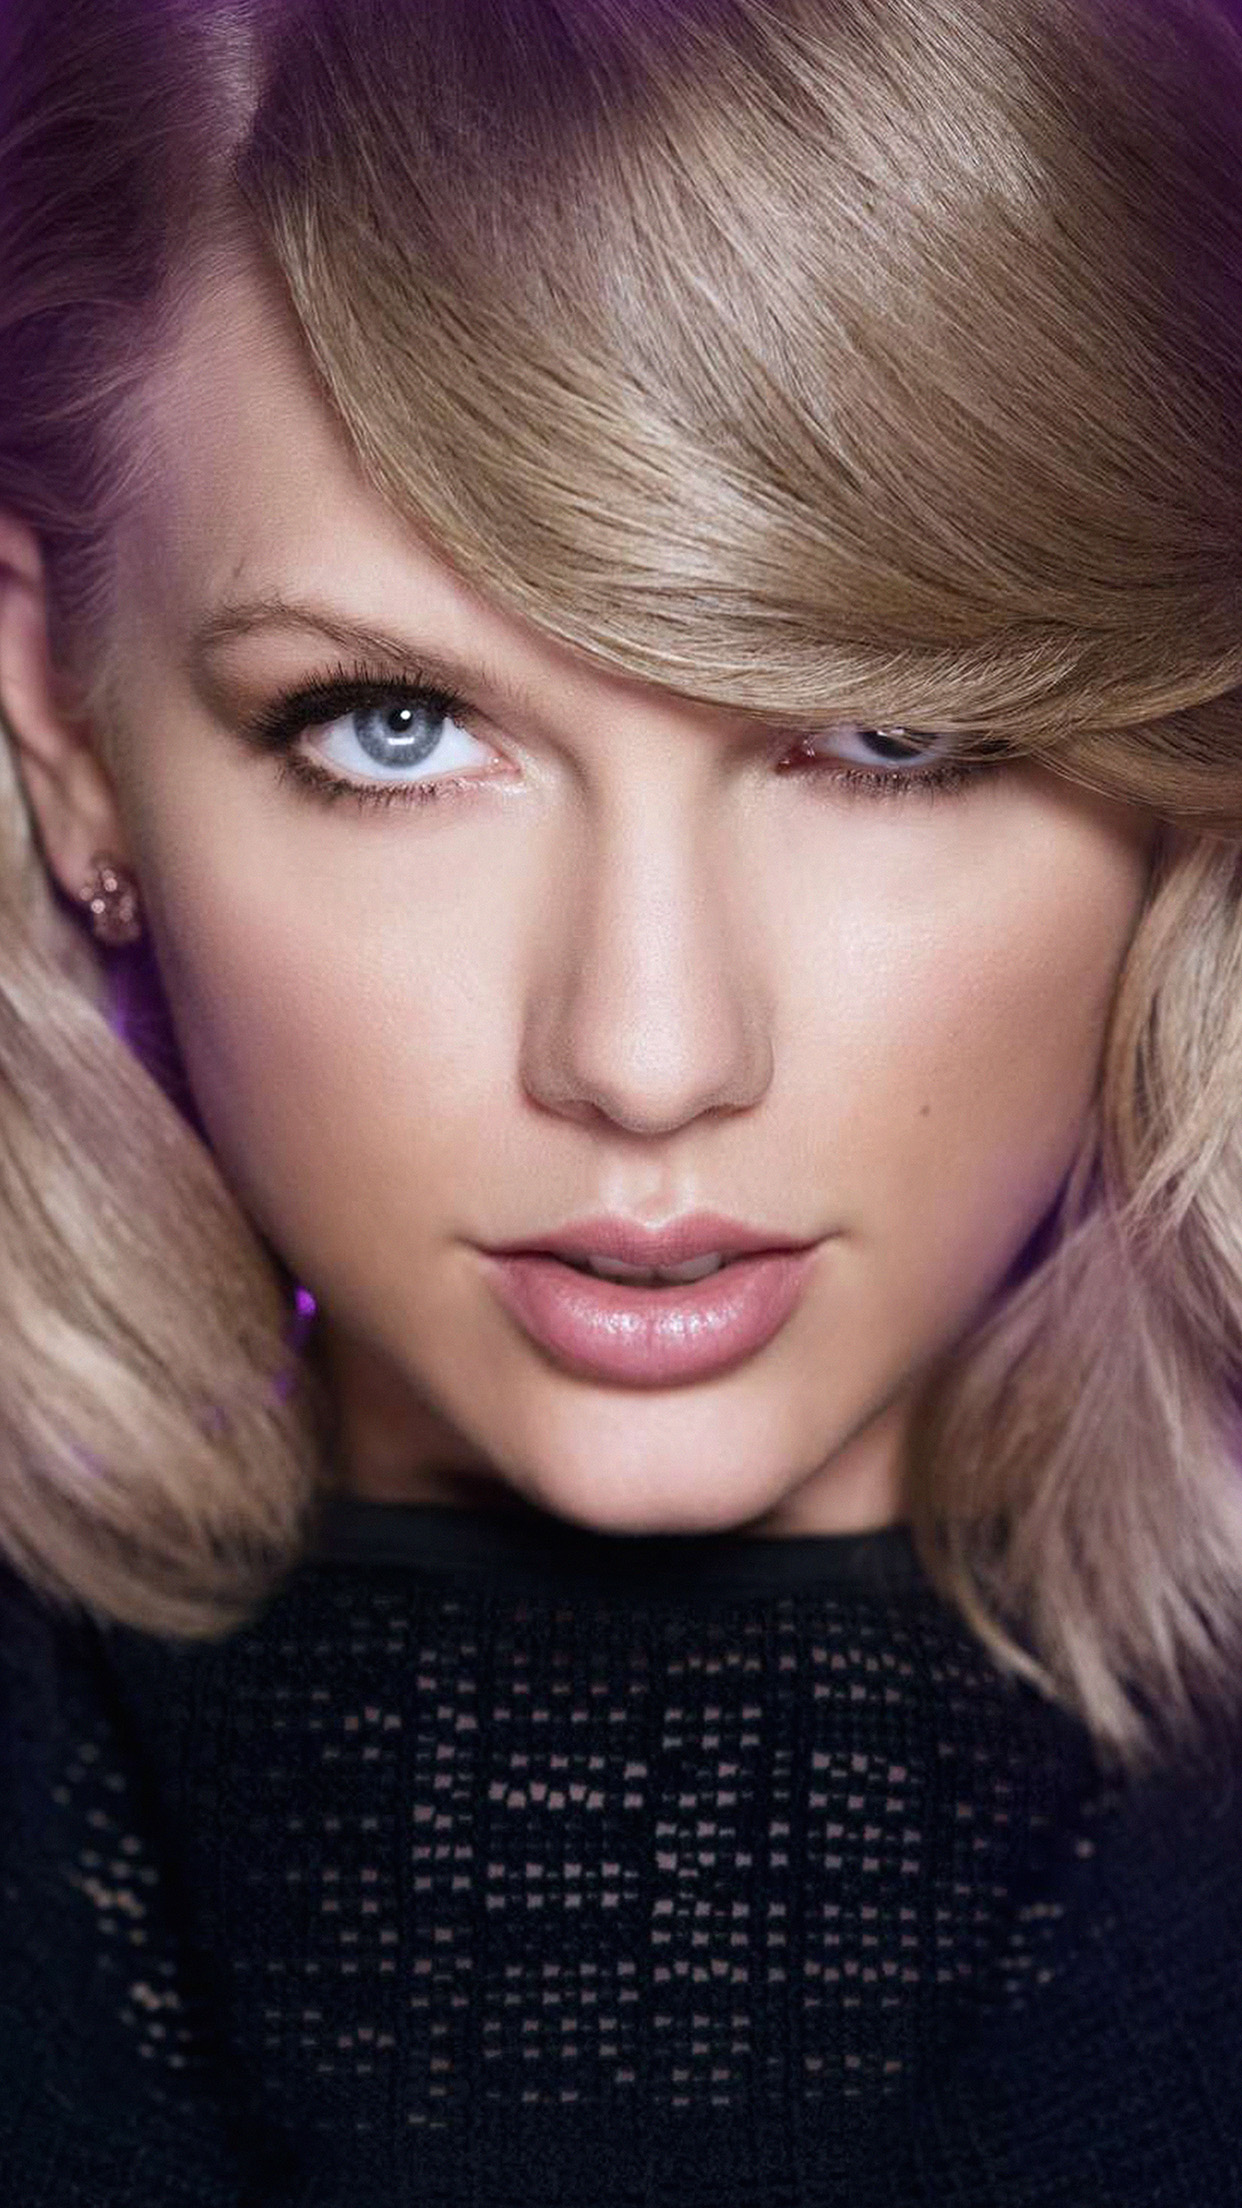 iphonepapers | iphone 8 wallpaper | hi53-taylor-swift-face-music